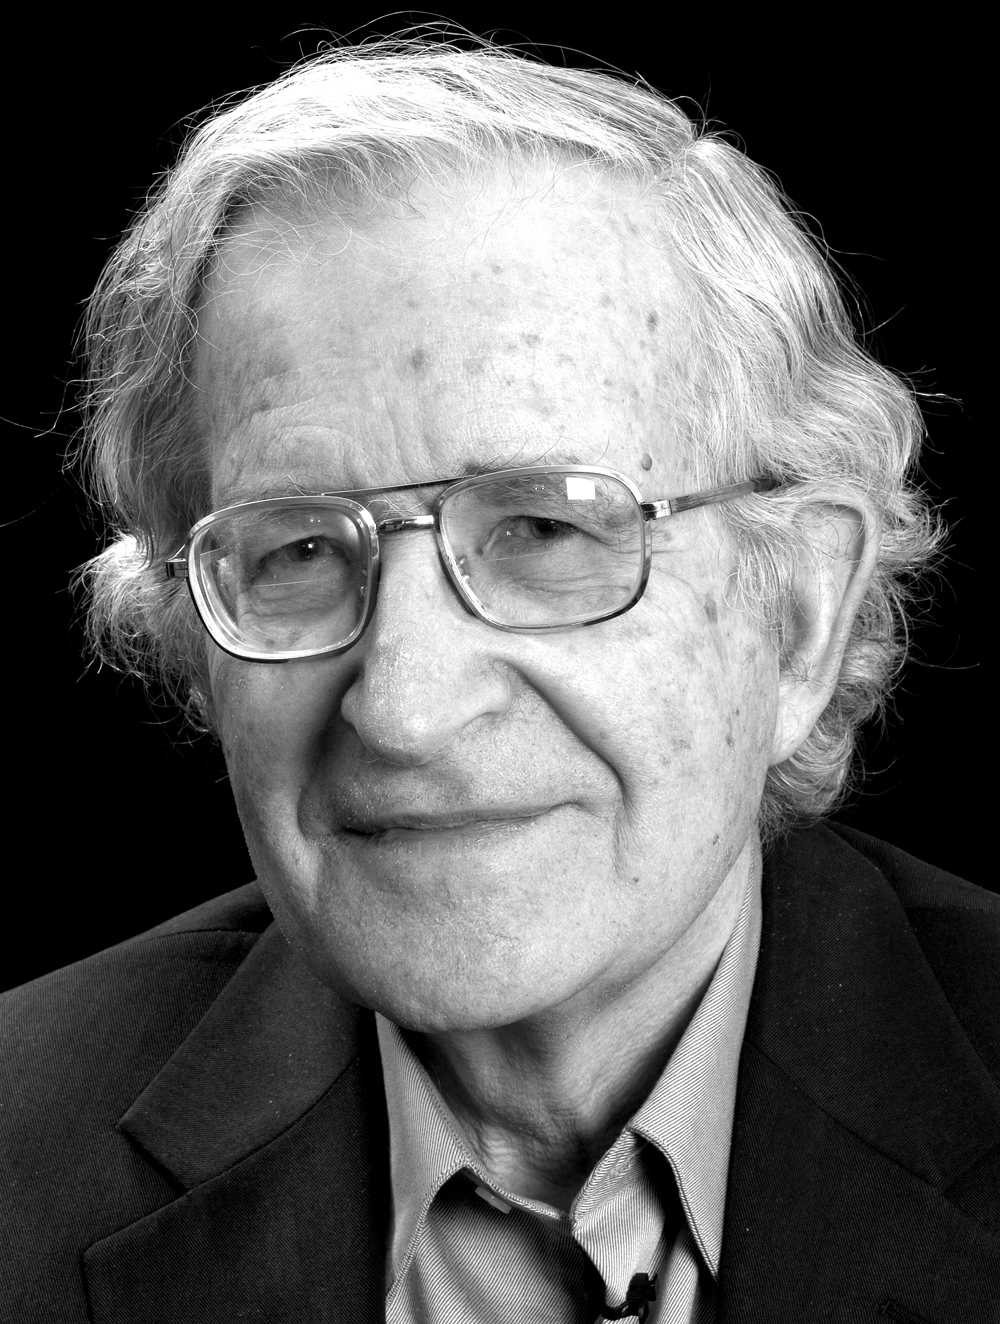 noam chomsky net worth biography age weight height